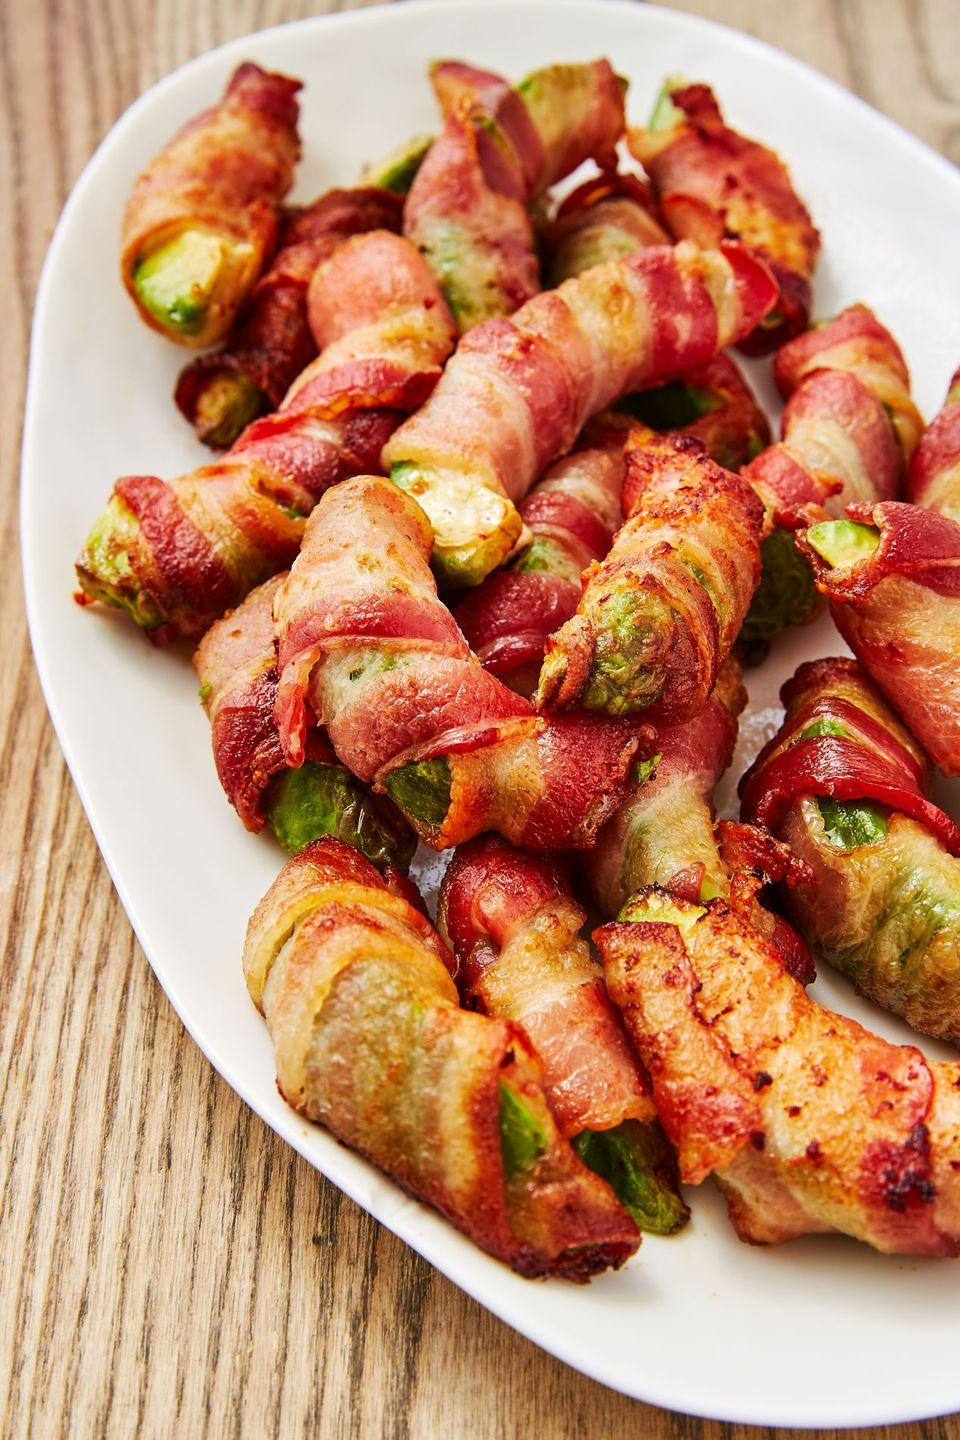 """<p>Perfectly crispy bacon - just the way it should be. </p><p>Get the recipe from <a href=""""https://www.delish.com/cooking/recipe-ideas/recipes/a48261/bacon-avocado-fries-recipe/"""" rel=""""nofollow noopener"""" target=""""_blank"""" data-ylk=""""slk:Delish"""" class=""""link rapid-noclick-resp"""">Delish</a>.</p>"""